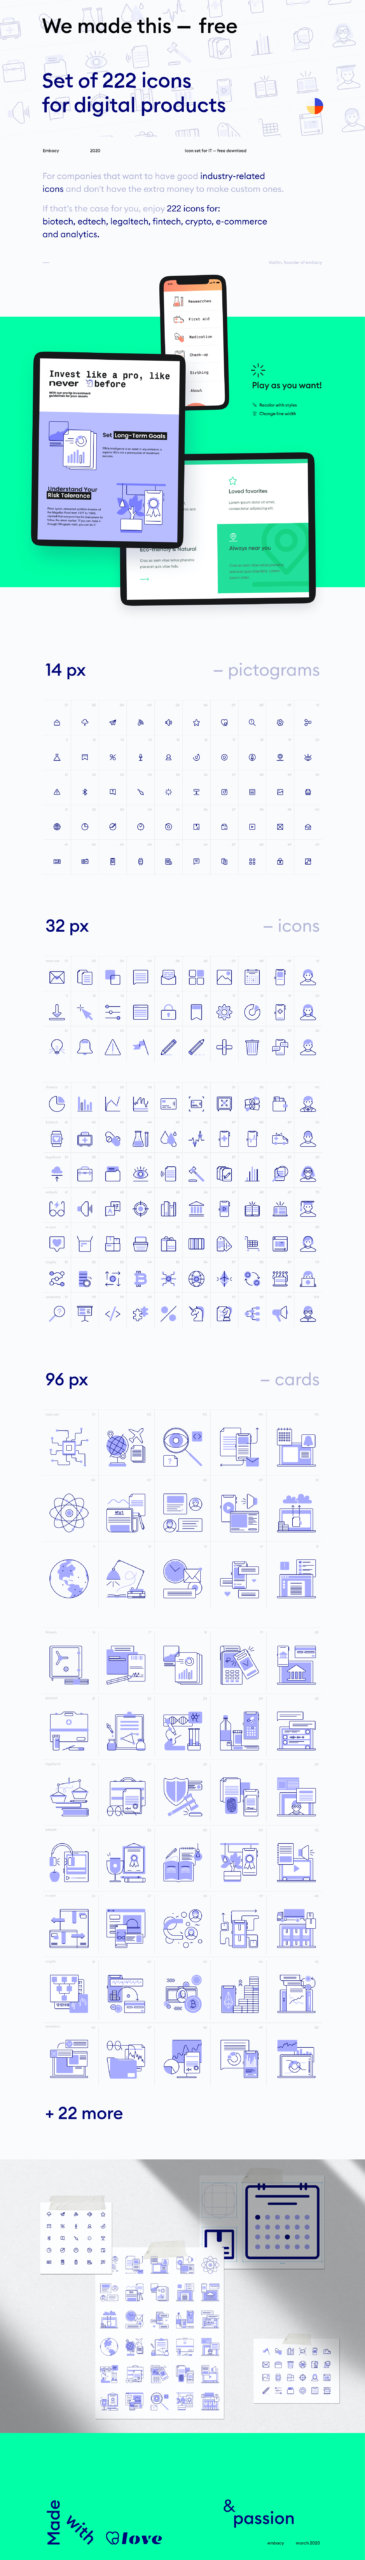 222 Free Icons for Digital Products from UIGarage